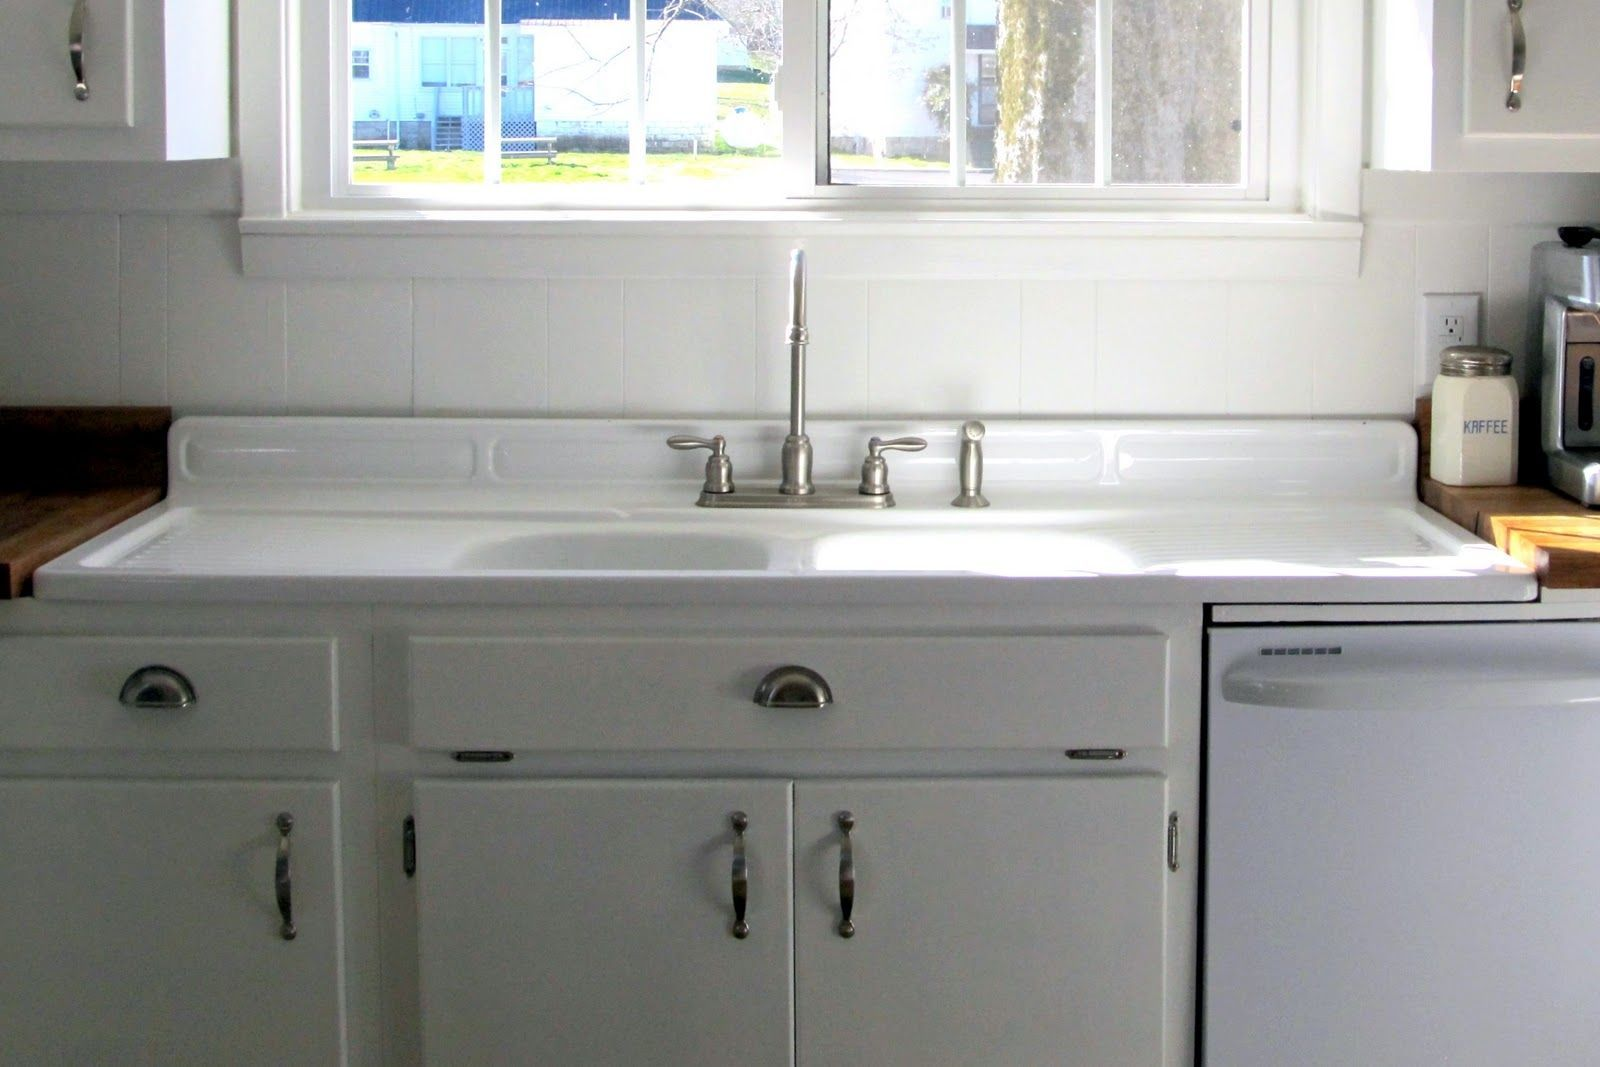 How To Install A 42 Inch Drainboard Sink Over Conventional